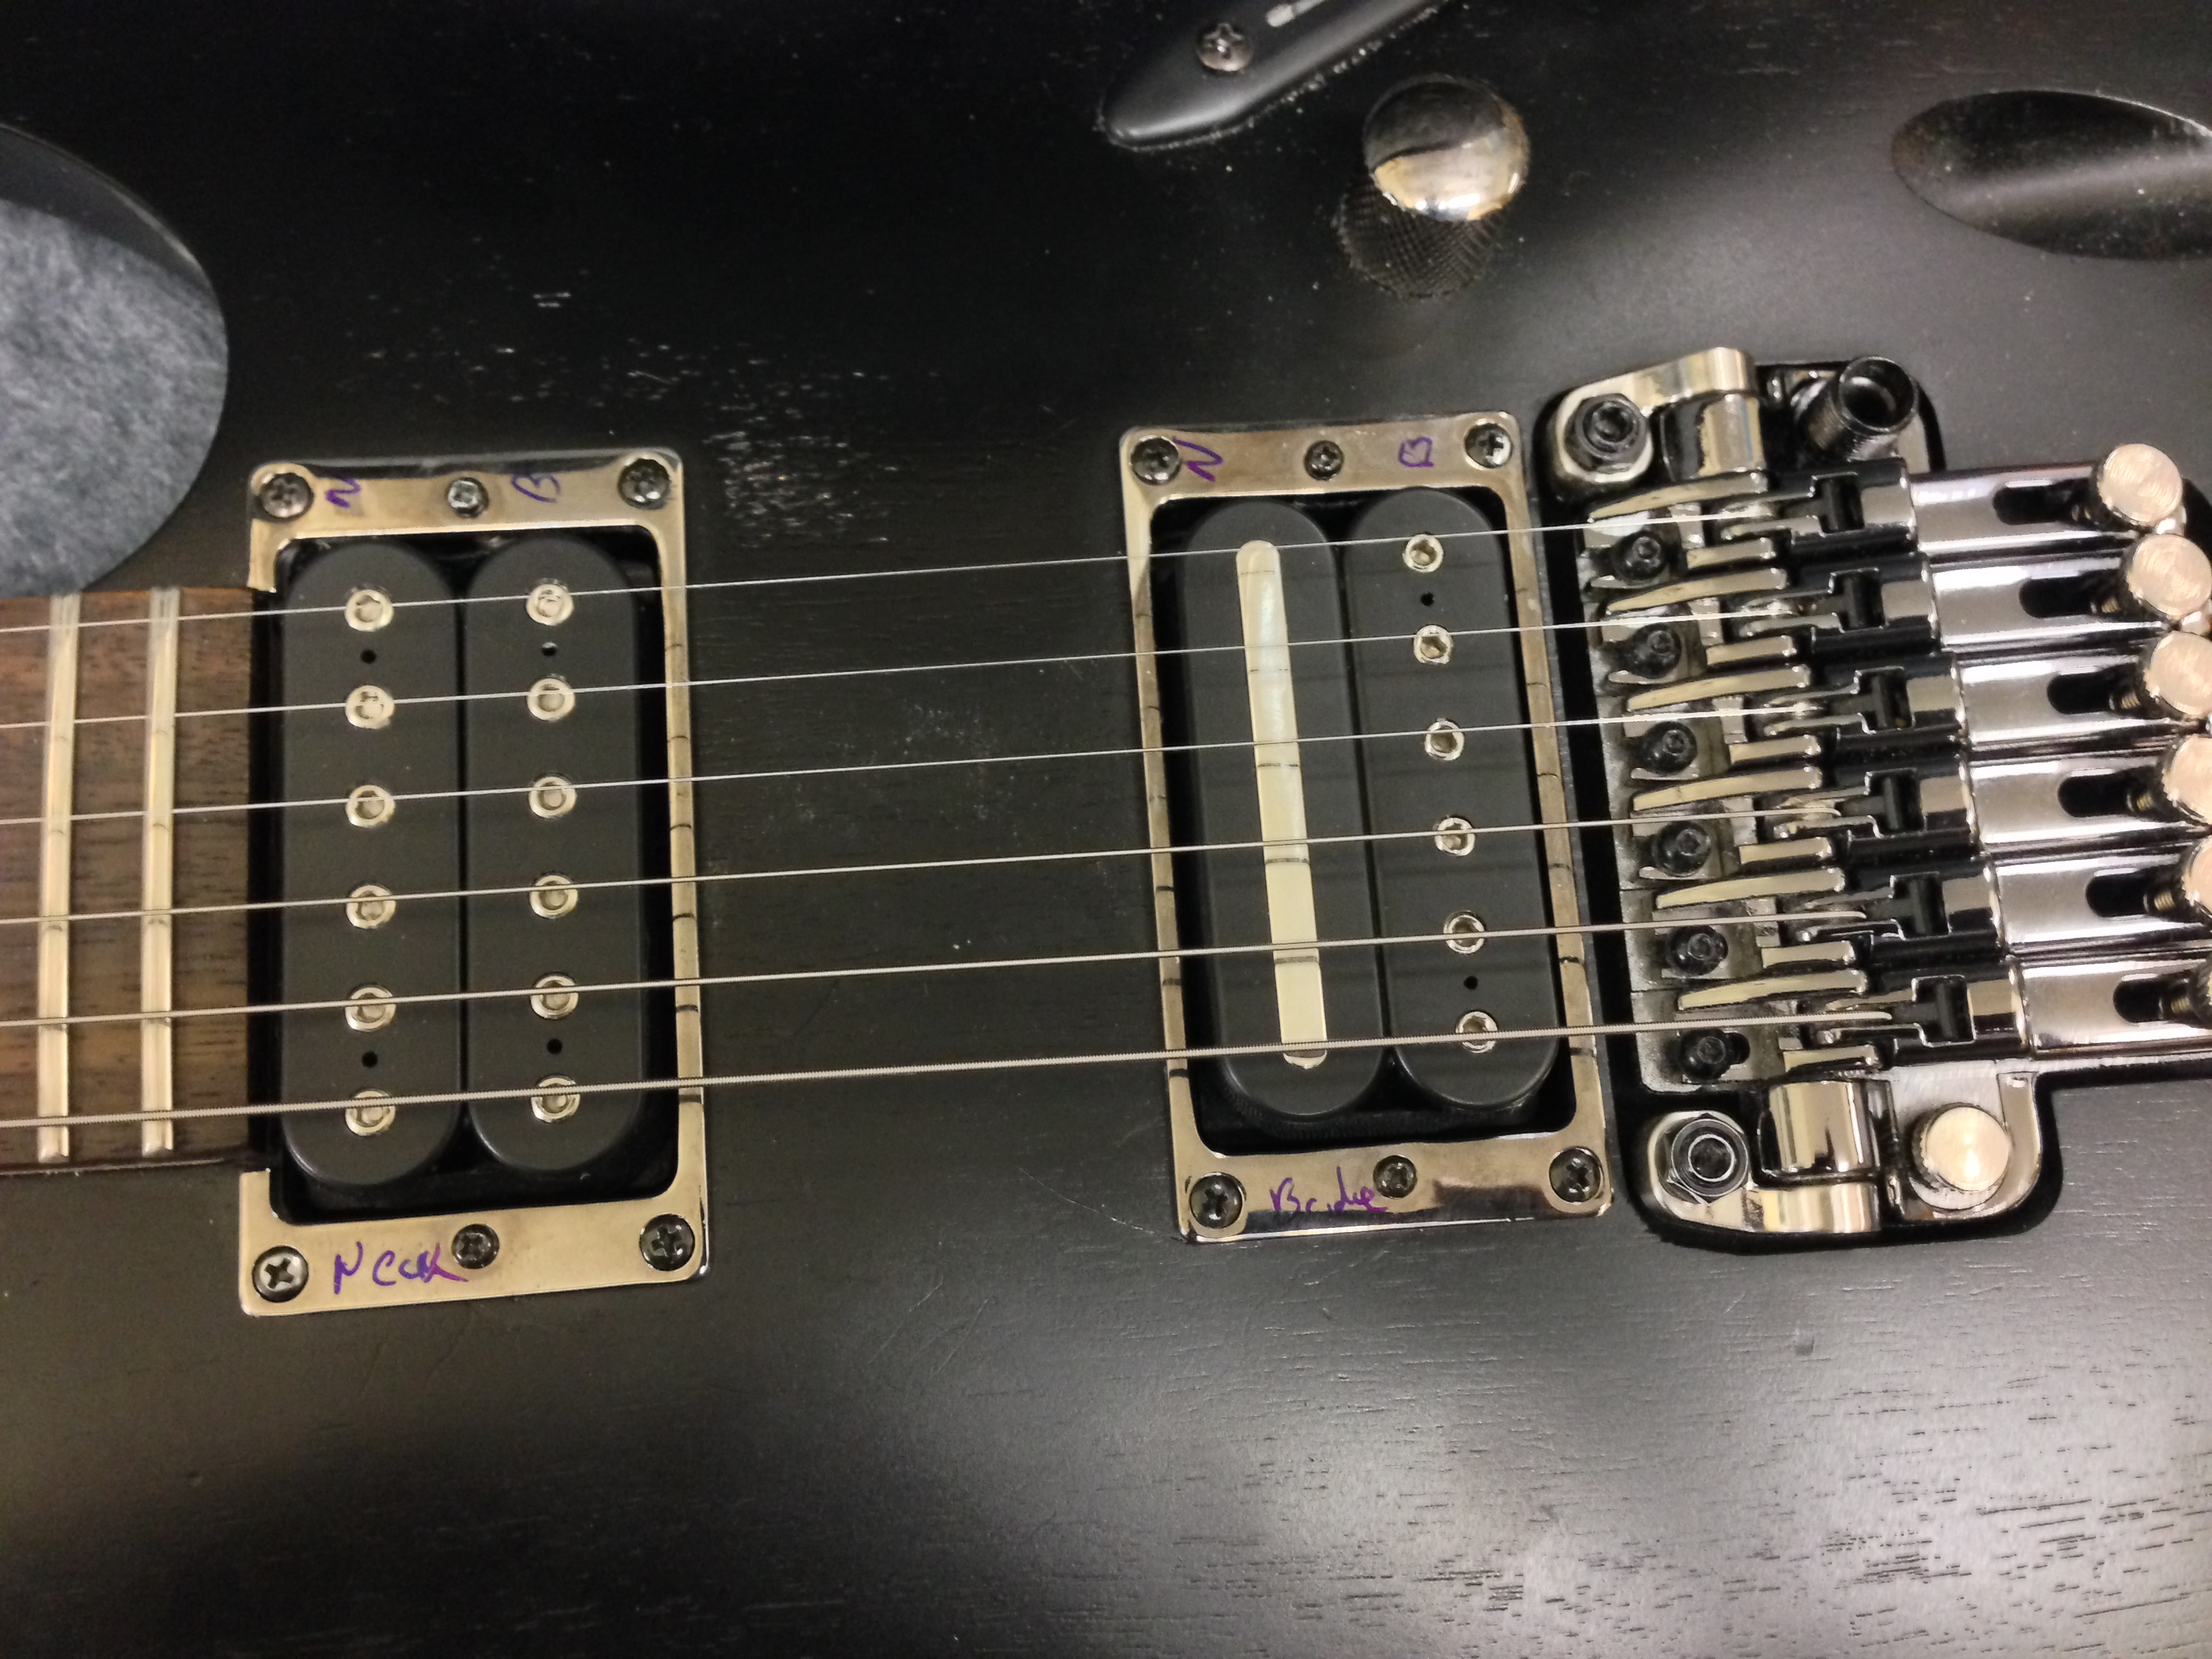 Changing the Pickups in an Ibanez S420 Guitar – The